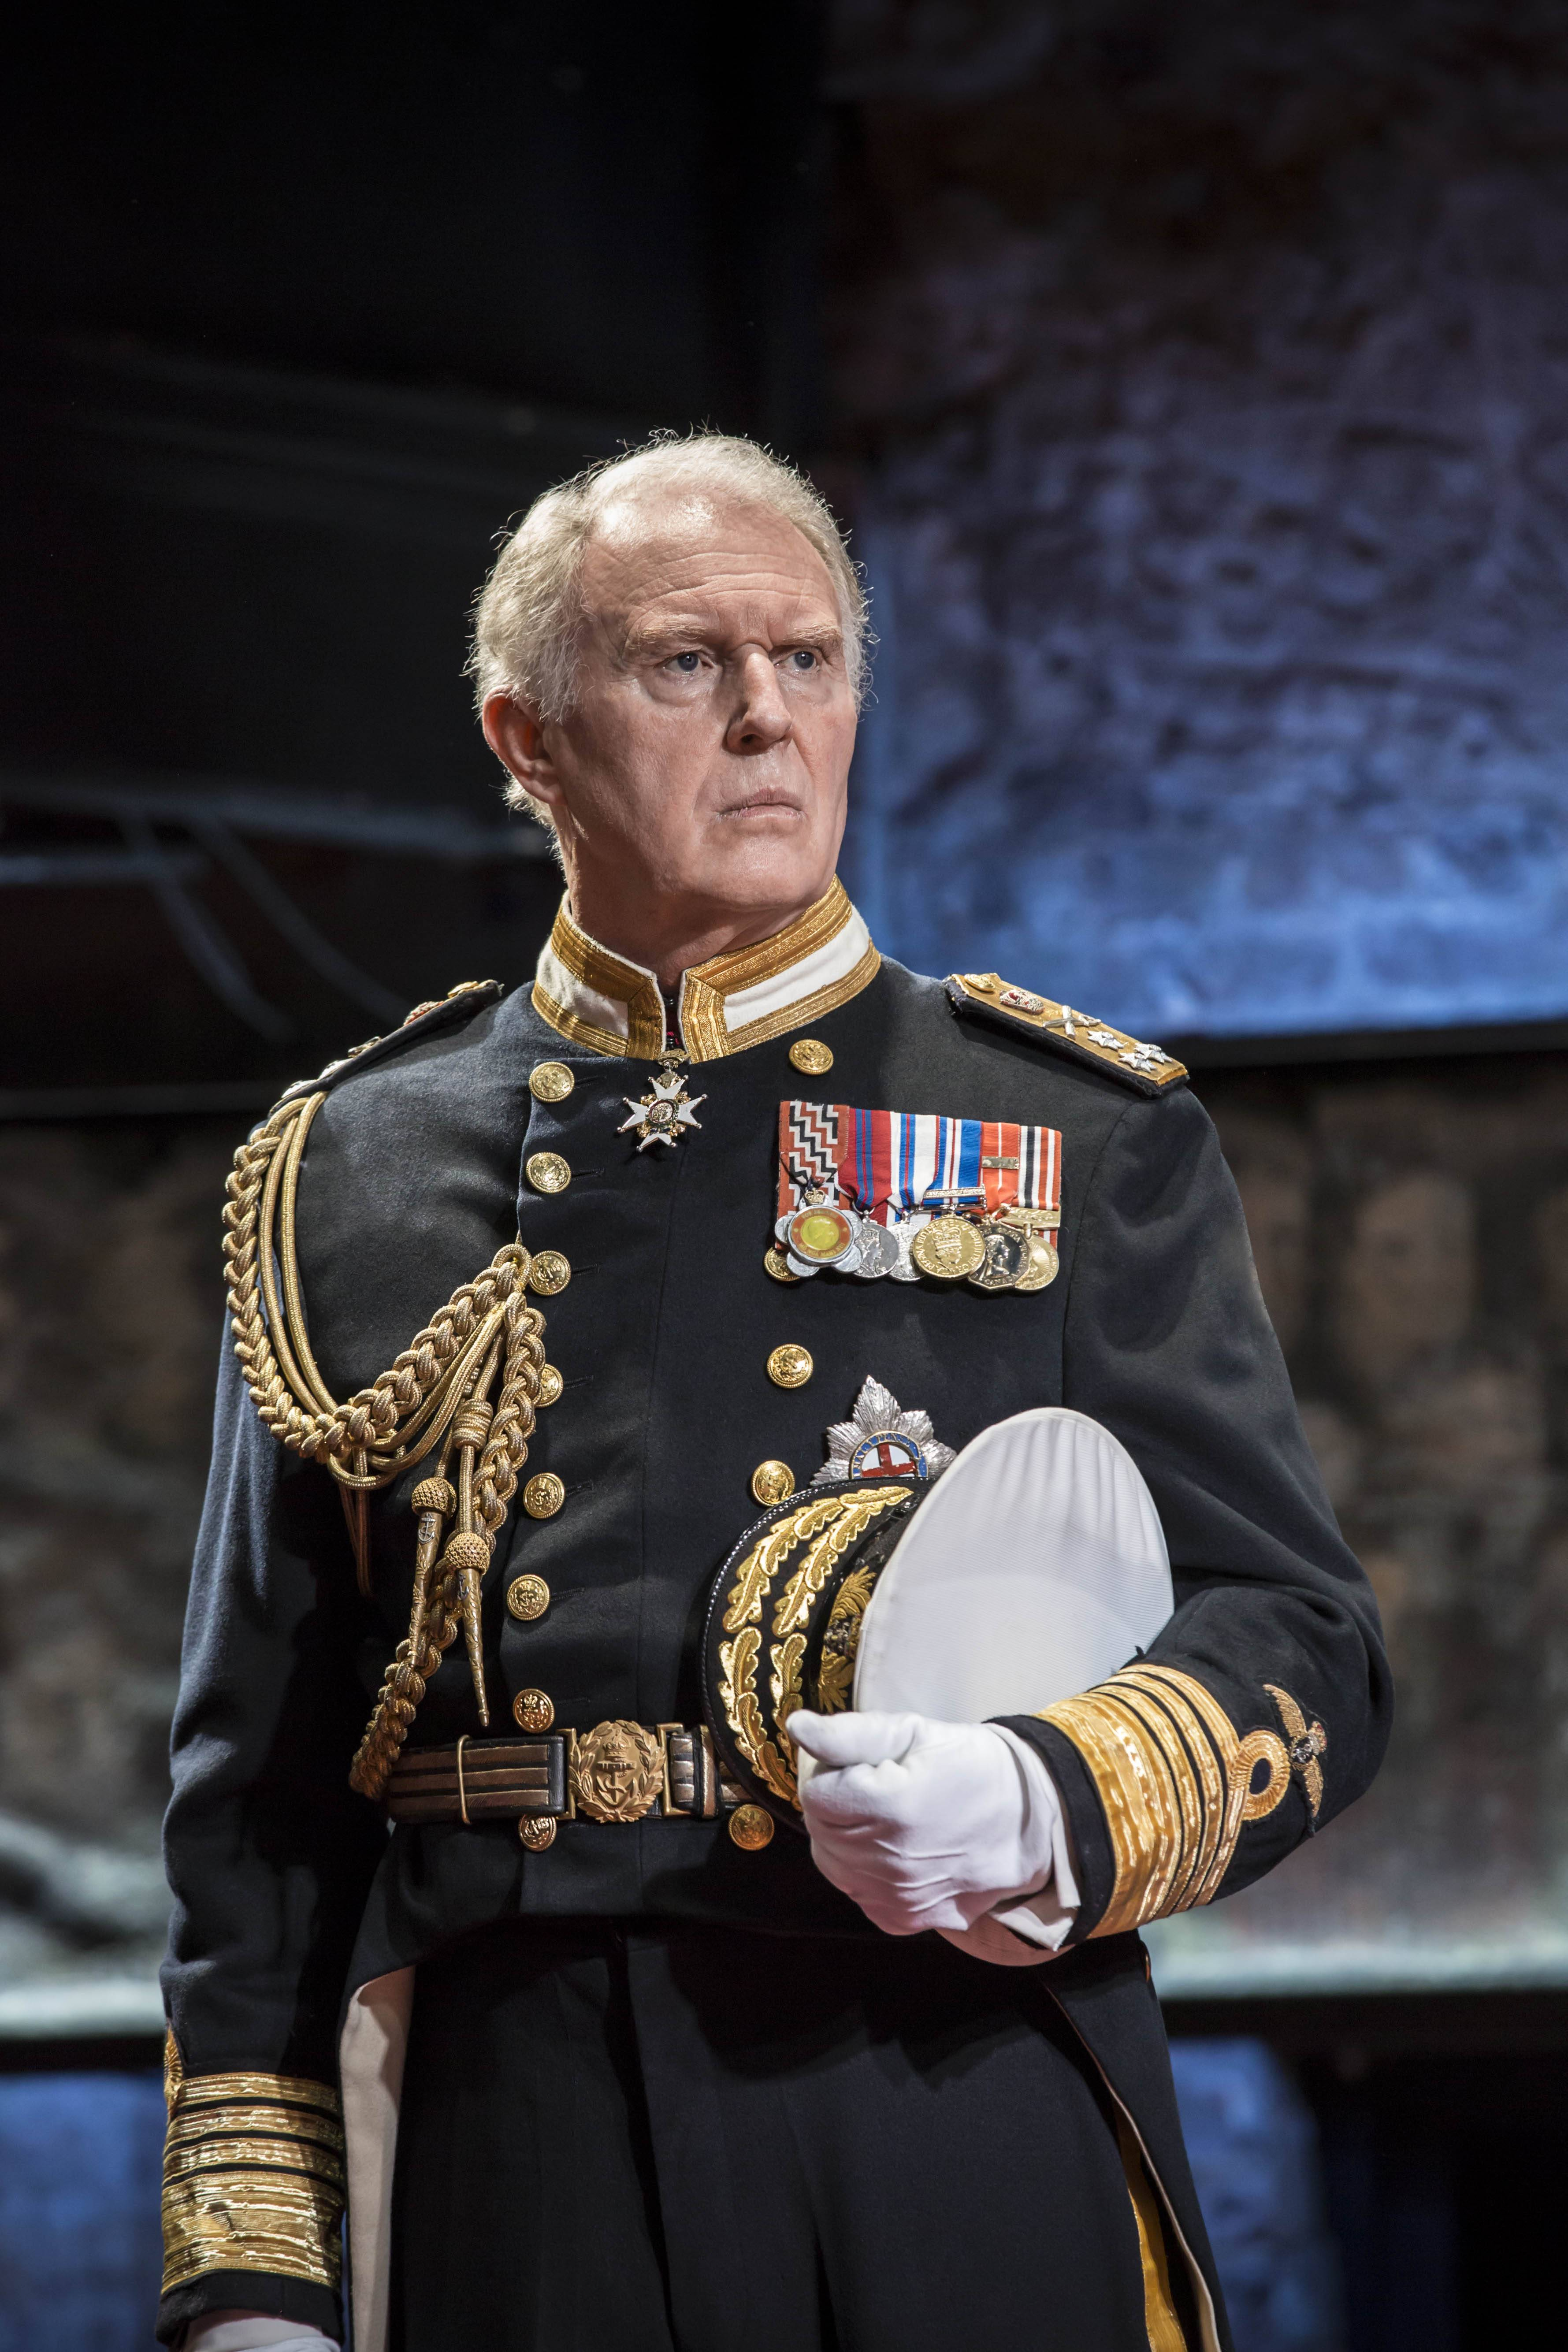 Actor Tim Pigott-Smith plays Britain's Prince Charles during in the play 'King Charles III' at the Almeida Theatre in London. The new play about Britain's future king is getting rave reviews.